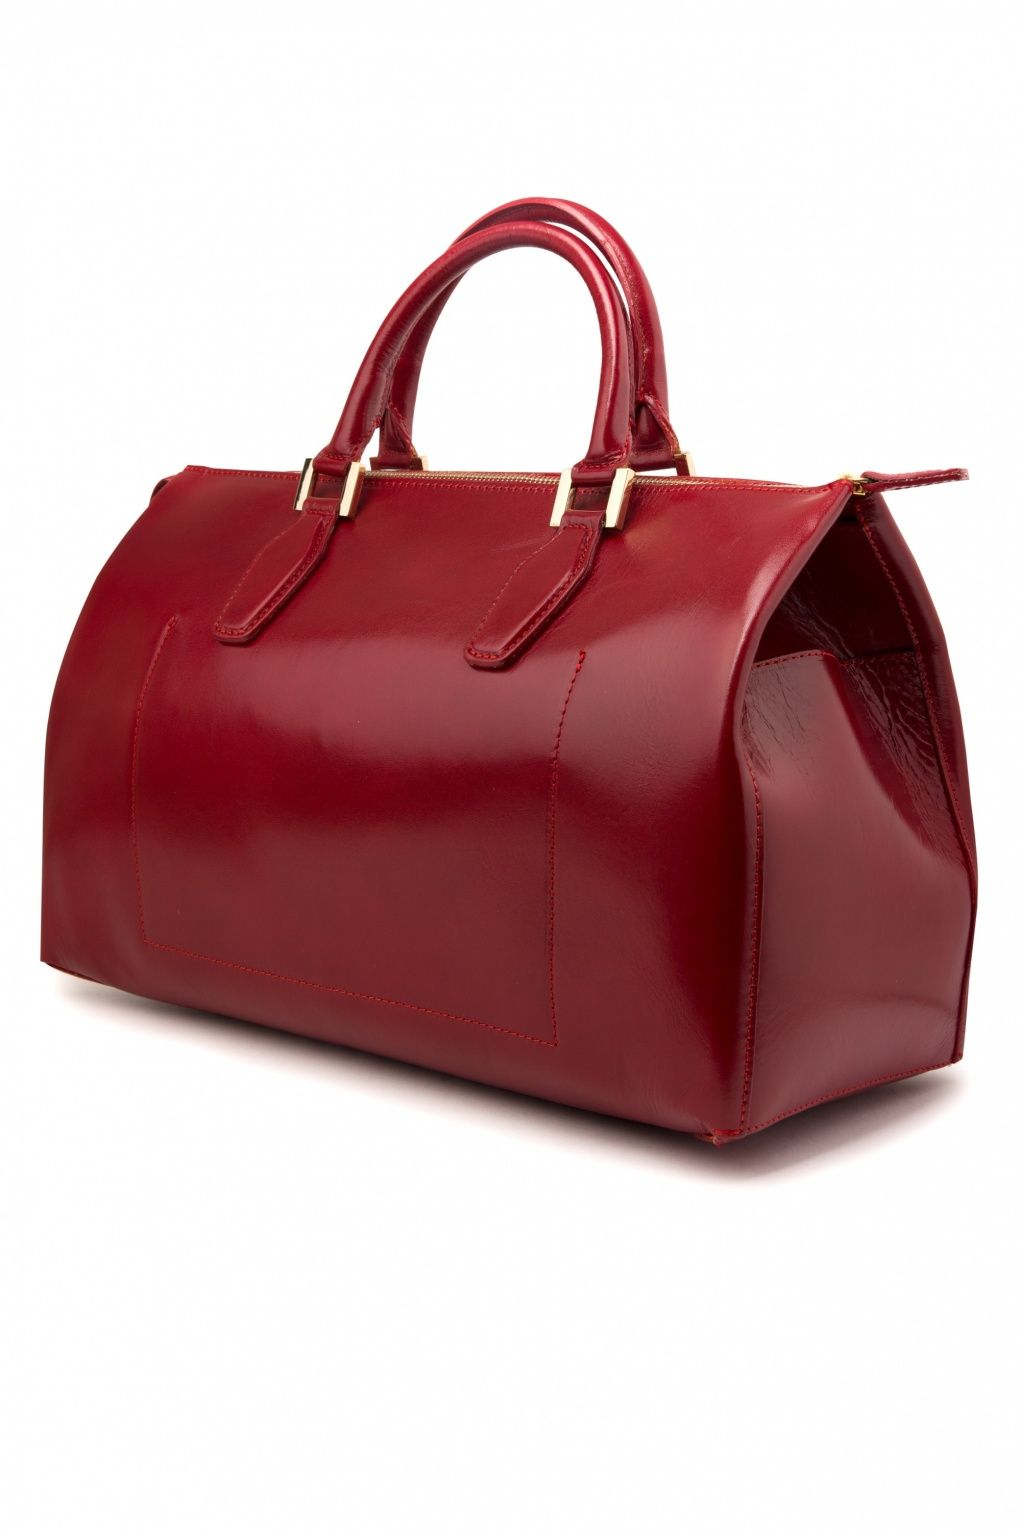 VaVa Vintage - 60s Vintage Style Doctors Bag Travel Ladies Bag Burgundy Red  genuine leather abf579484ef67